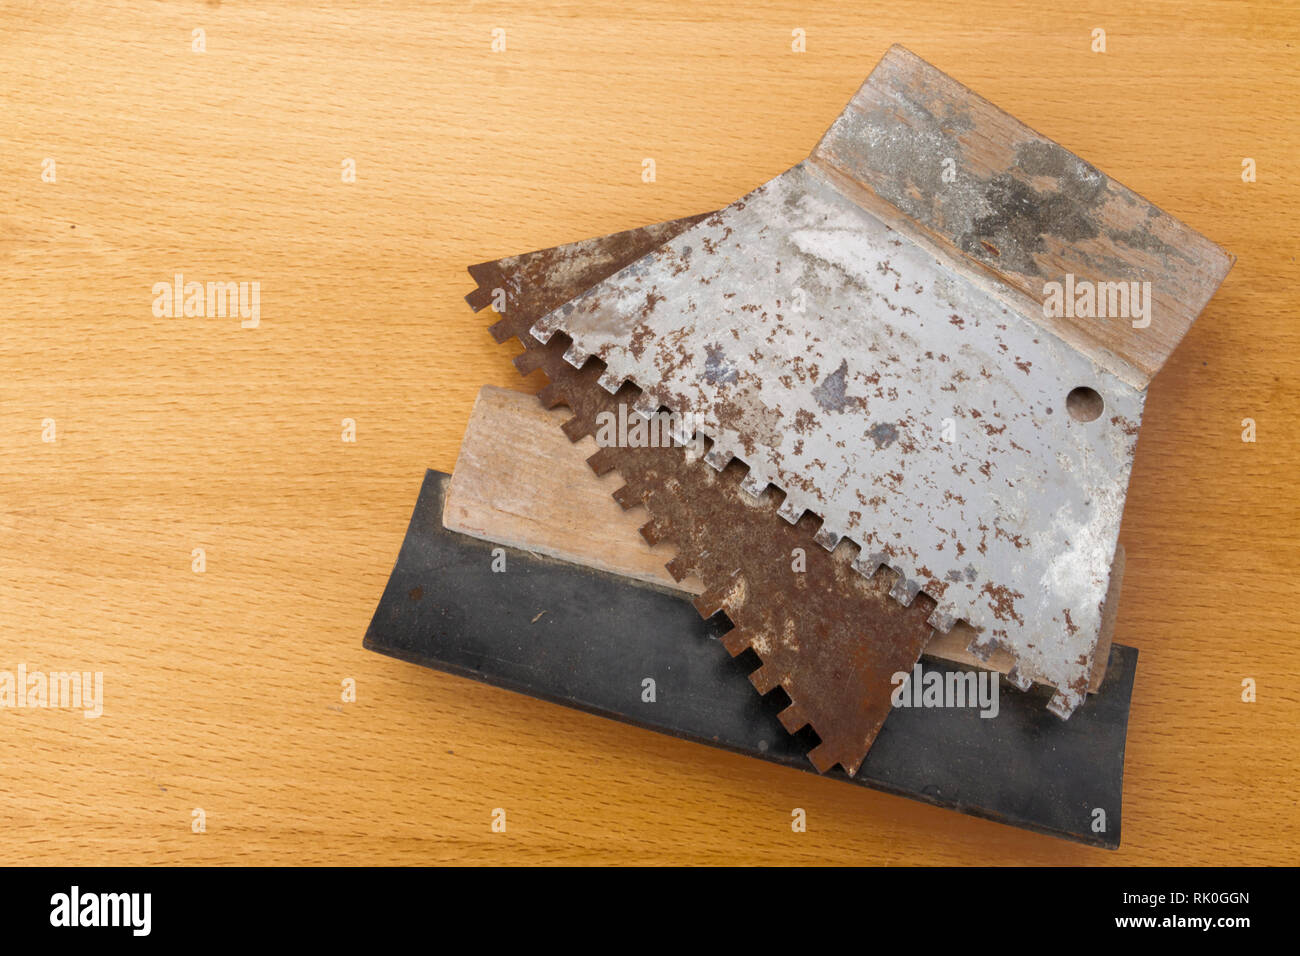 Glue spreader for cement and building blocks in use for constructions - Stock Image